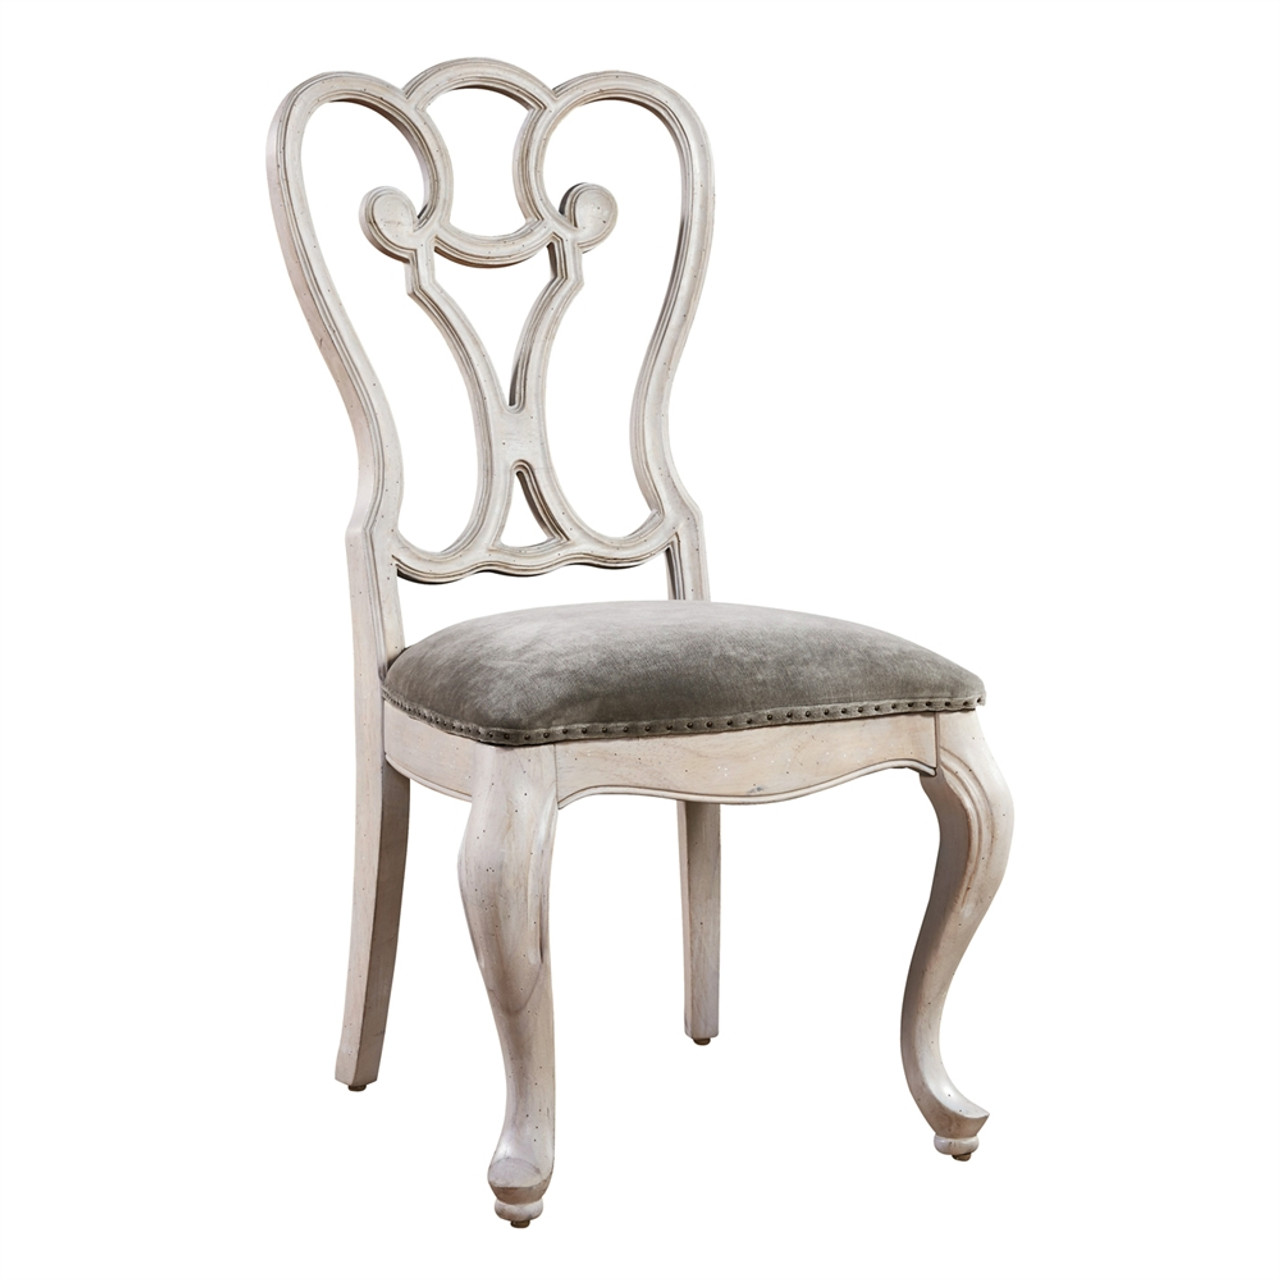 Peachy Belgian Cottage Gray Velvet Upholstered Cabriole Dining Chair Home Interior And Landscaping Oversignezvosmurscom